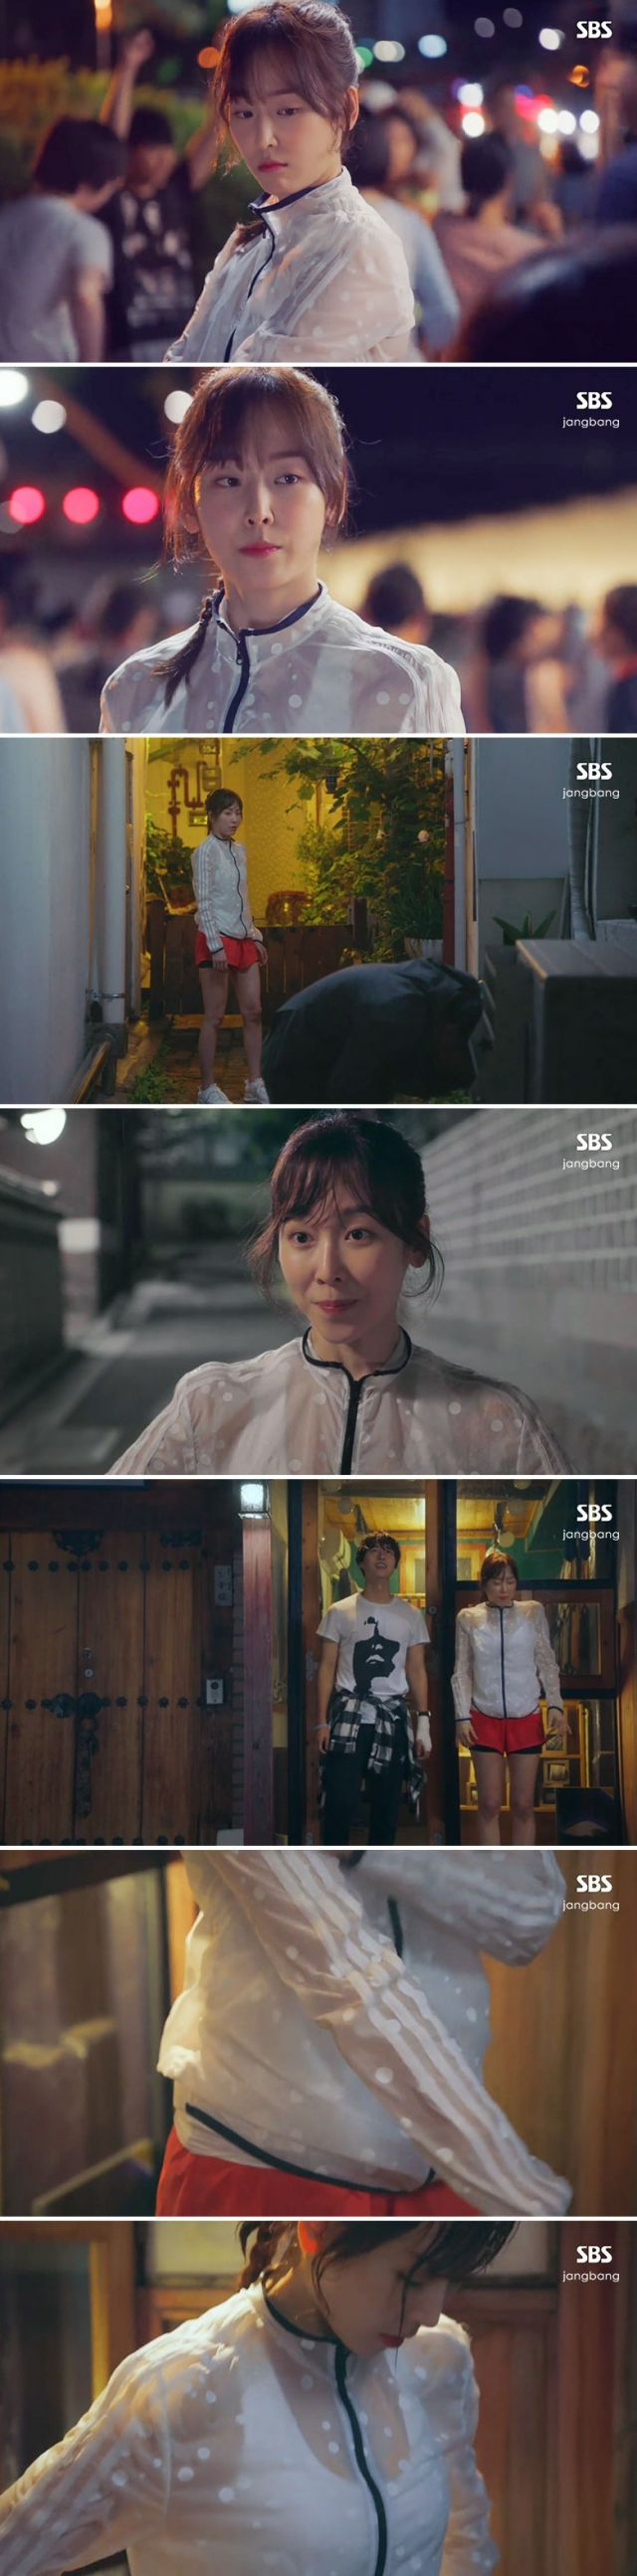 [Spoiler] Added episodes 1 and 2 captures for the Korean drama 'The Temperature of Love'